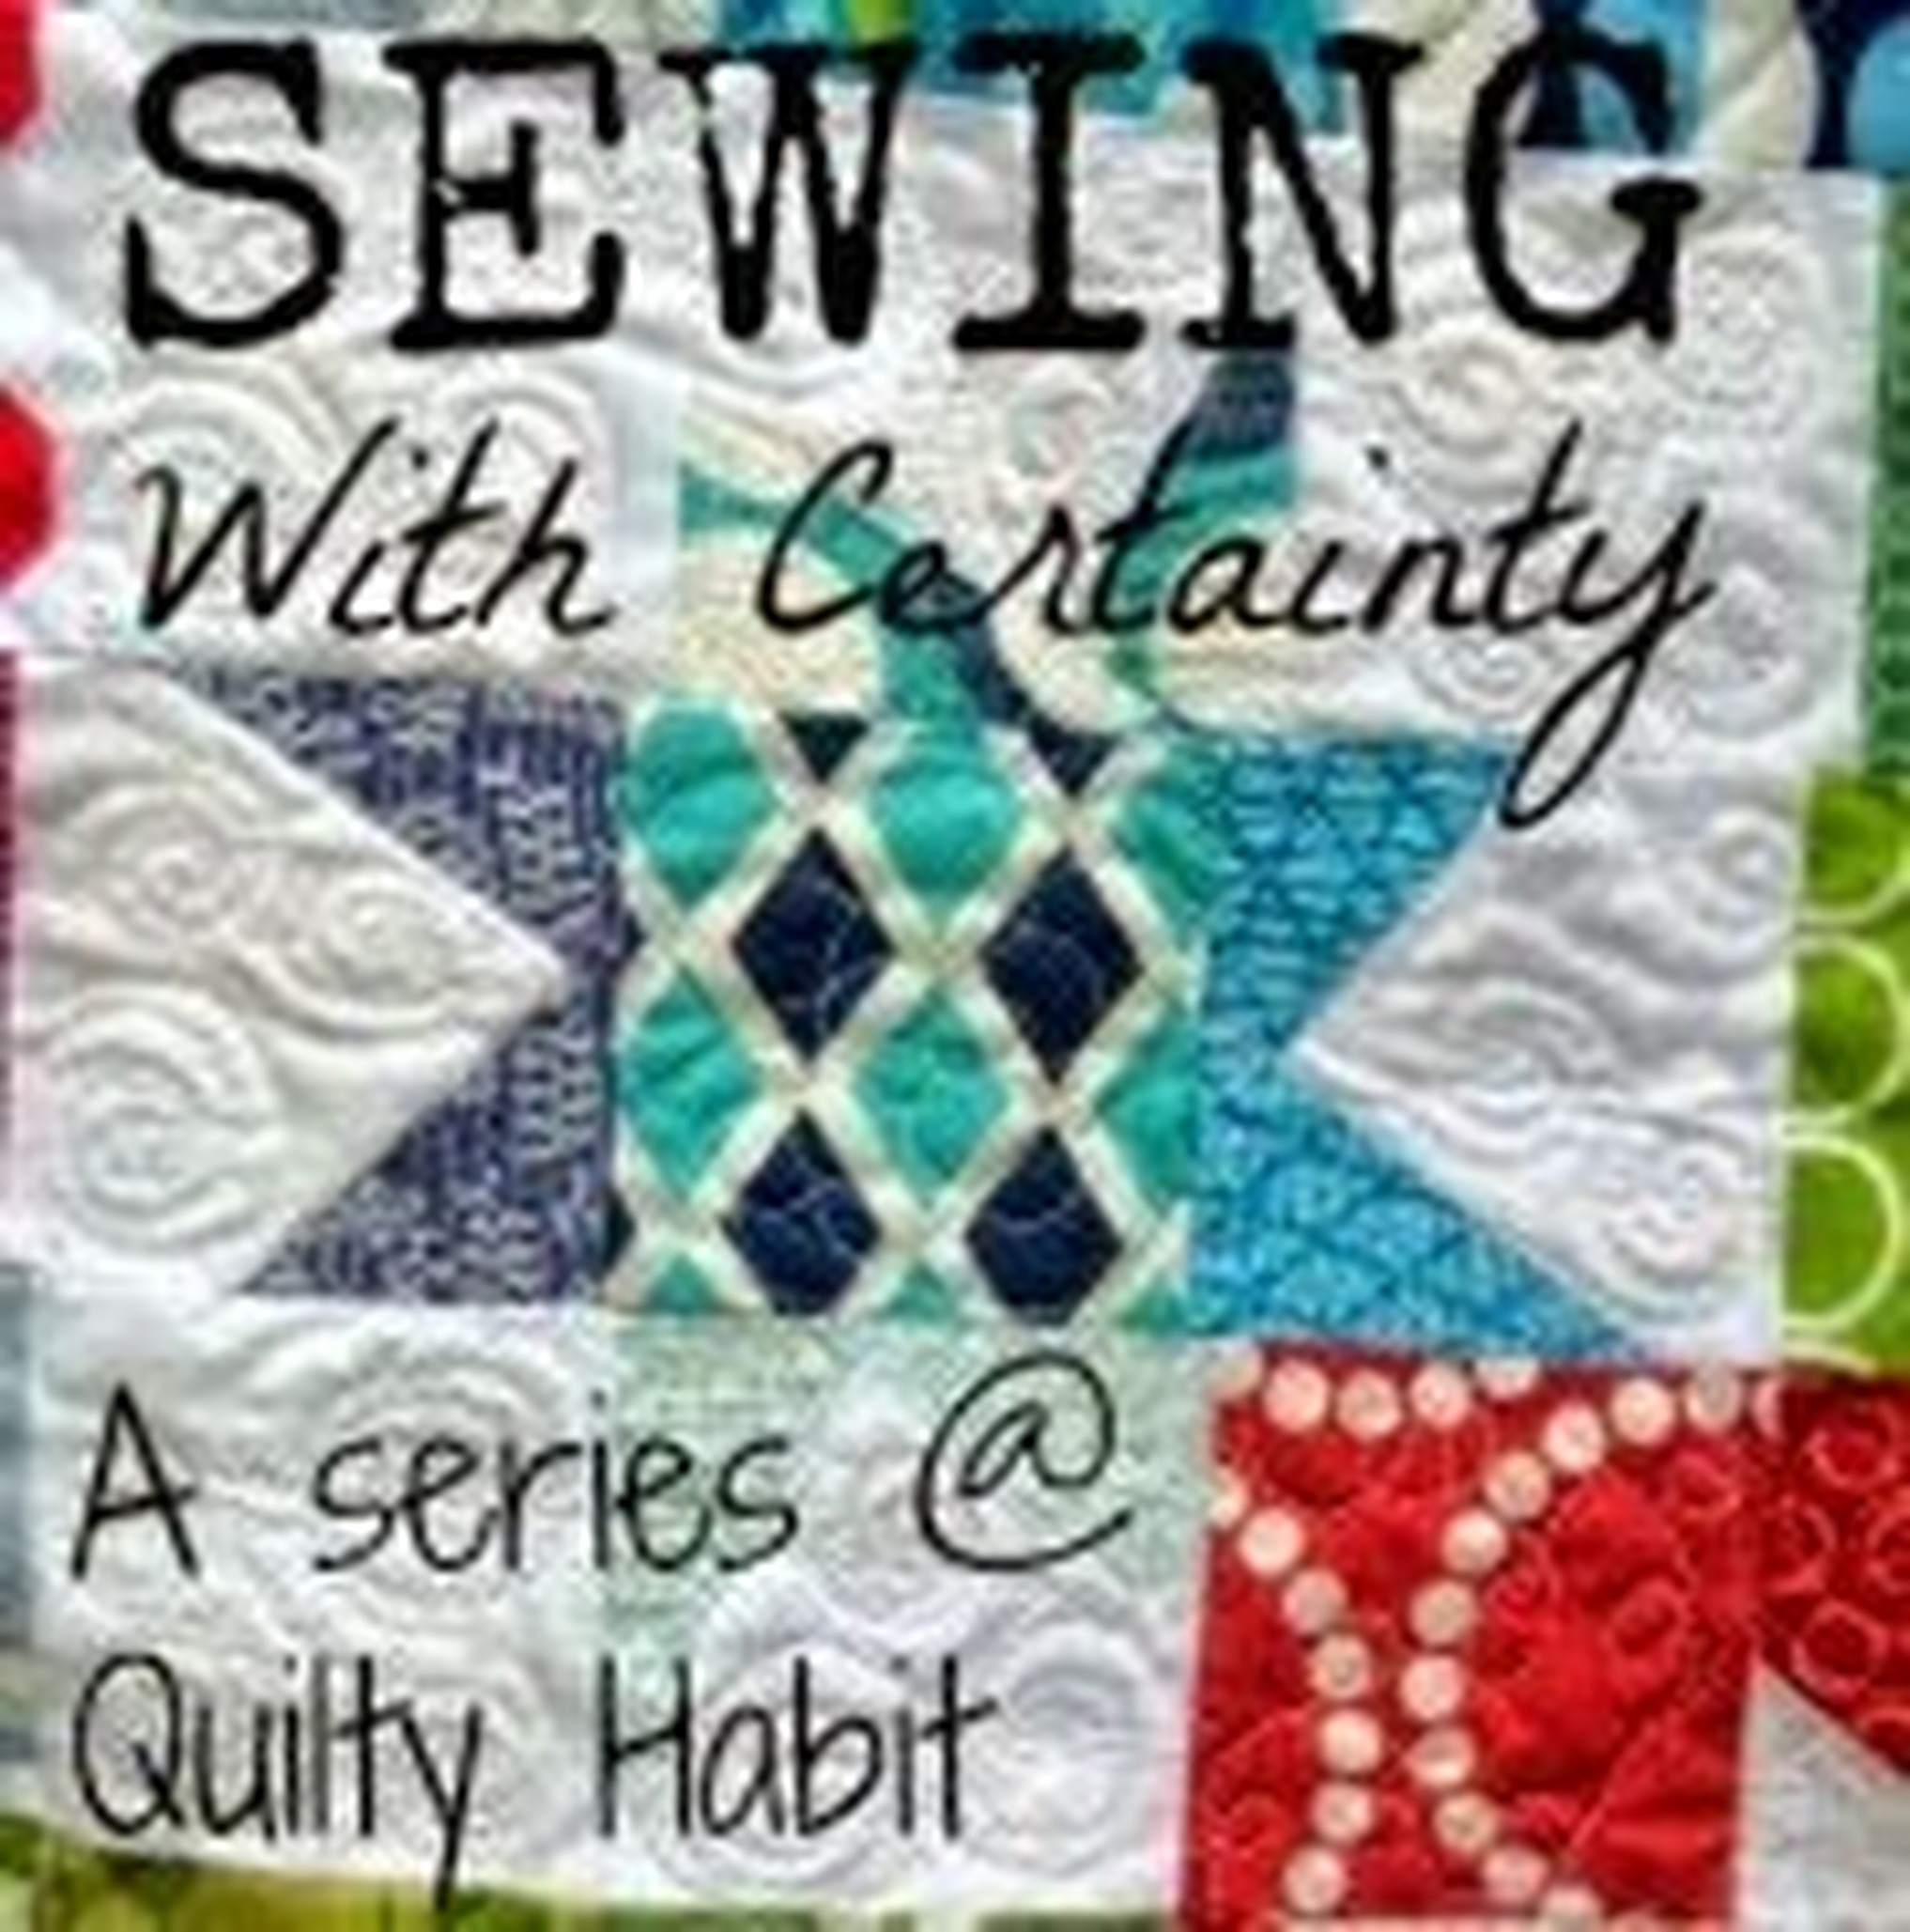 Sewing with Certainty